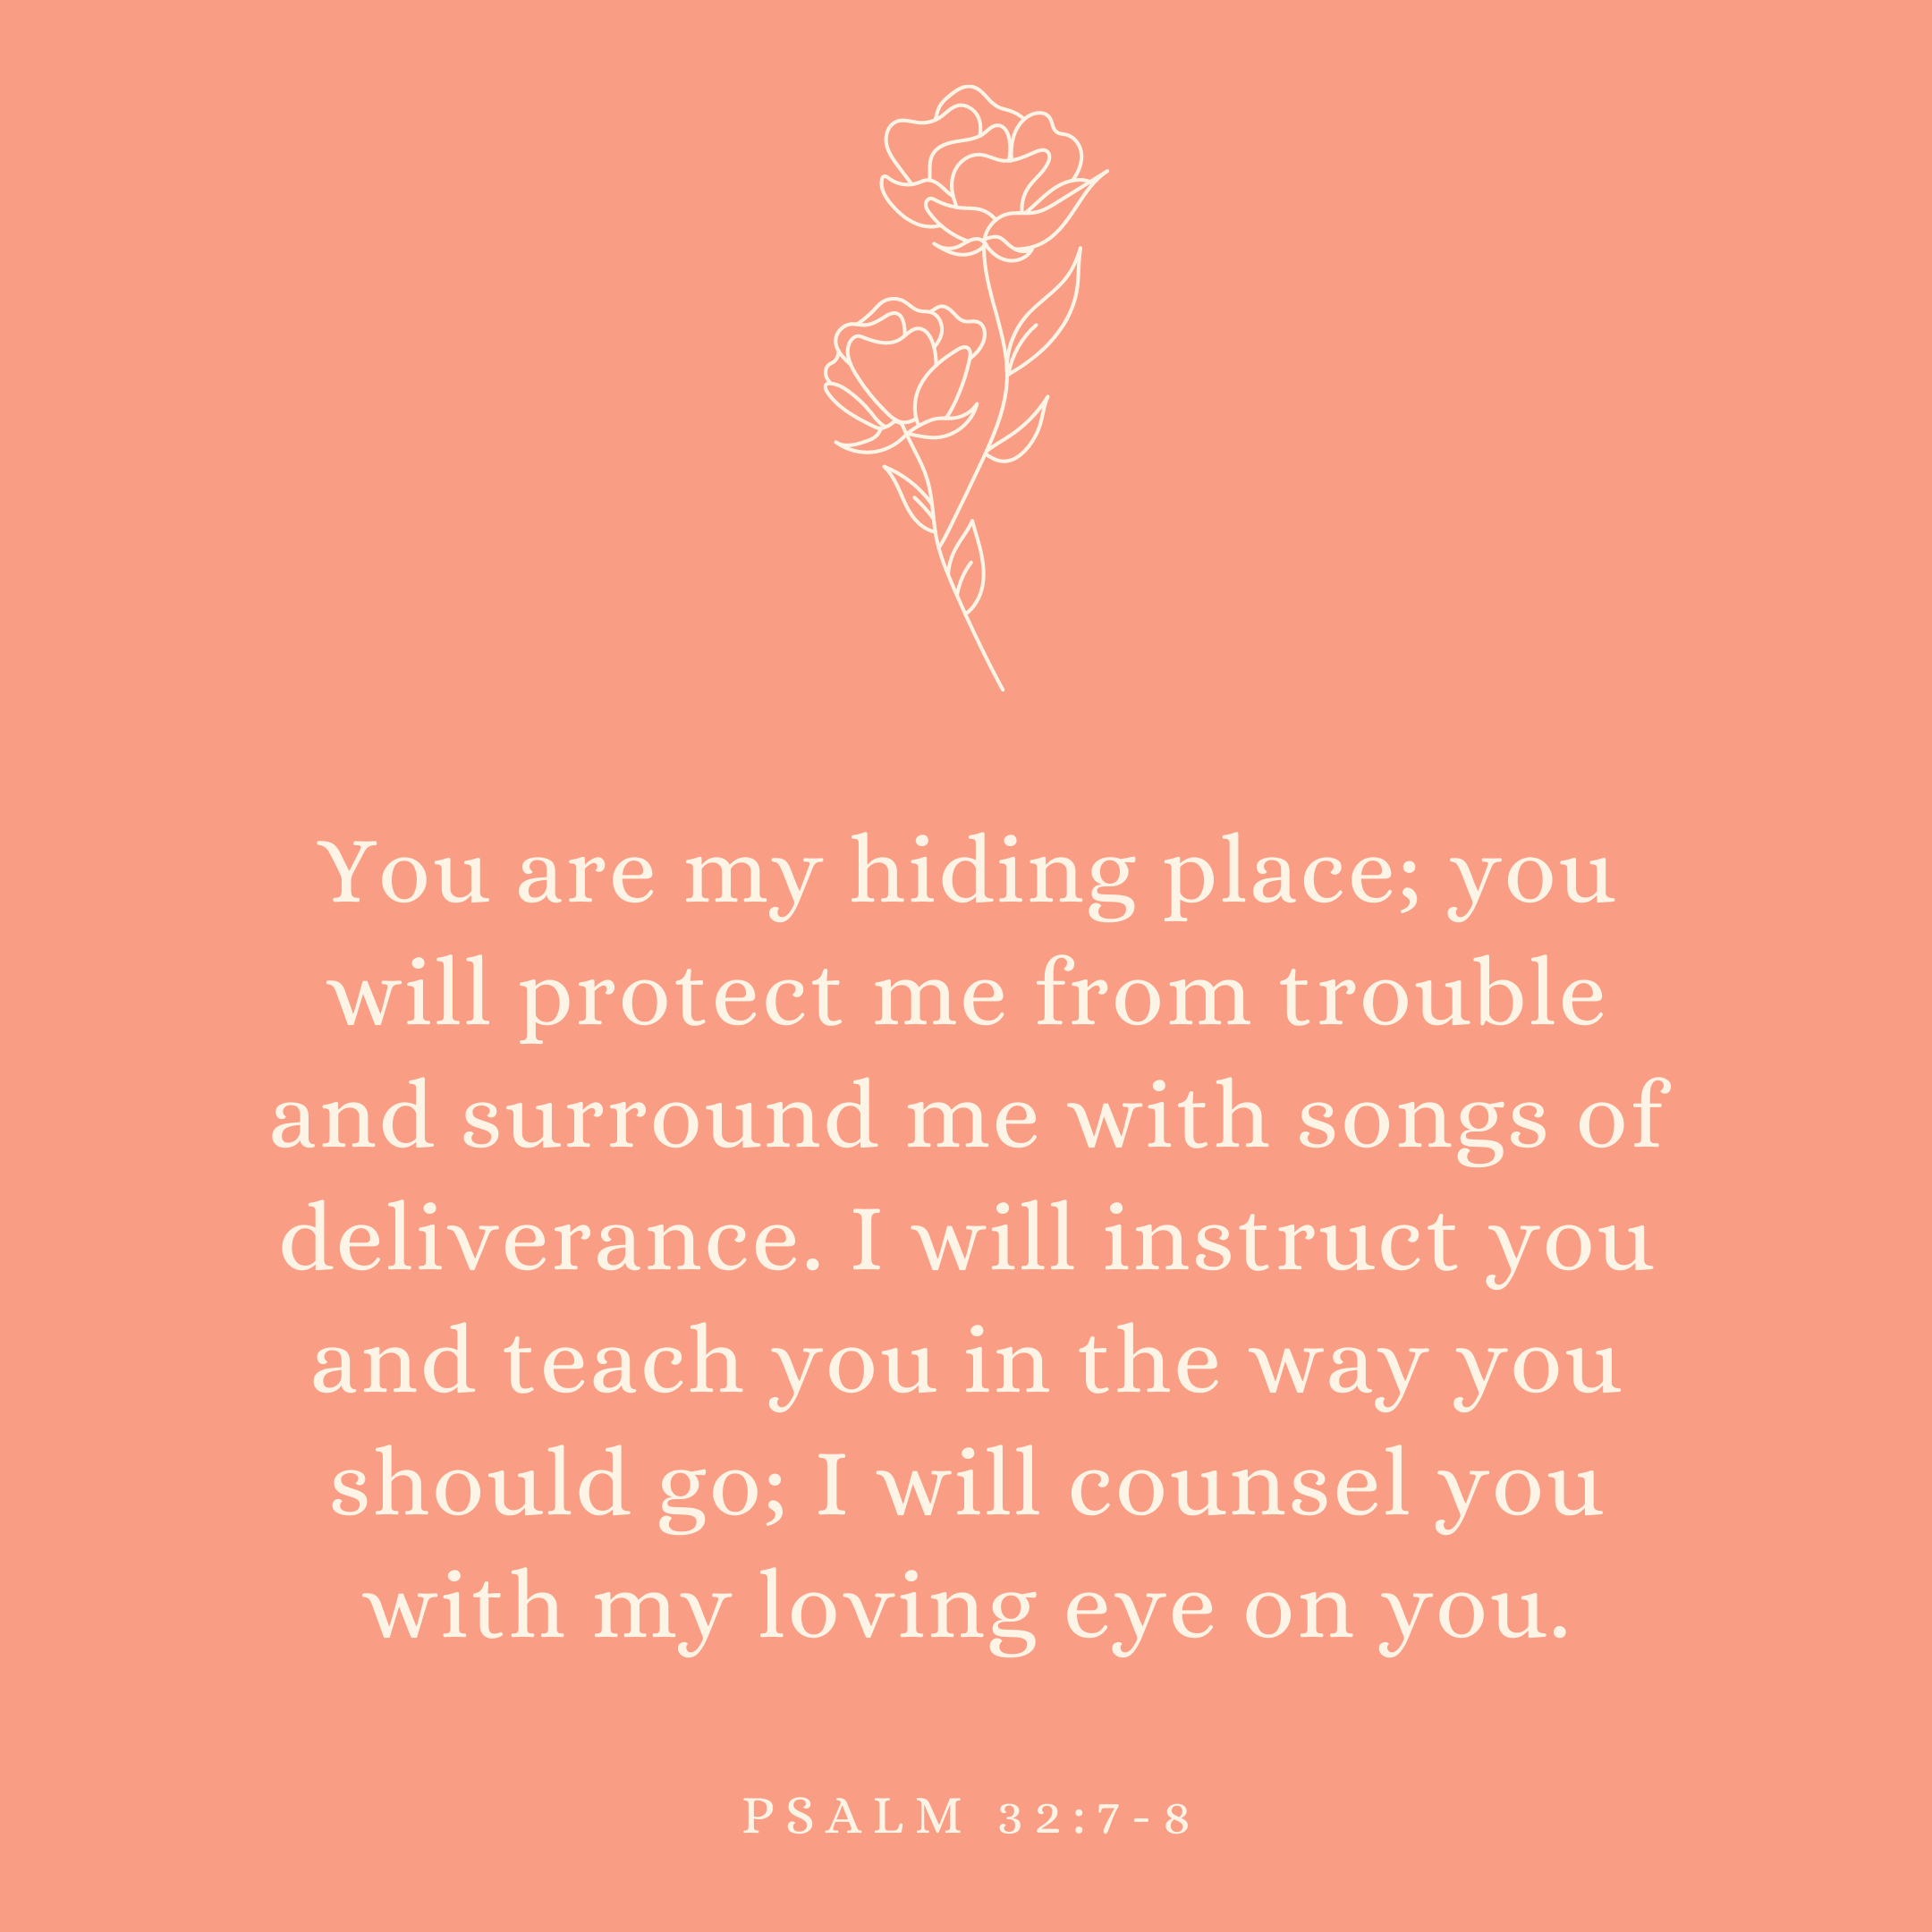 Psalm 32:7-8 You are my hiding place; you will protect me from trouble and surround me with songs of deliverance. I will instruct you and teach you in the way you should go; I will counsel you with my loving eye on you.